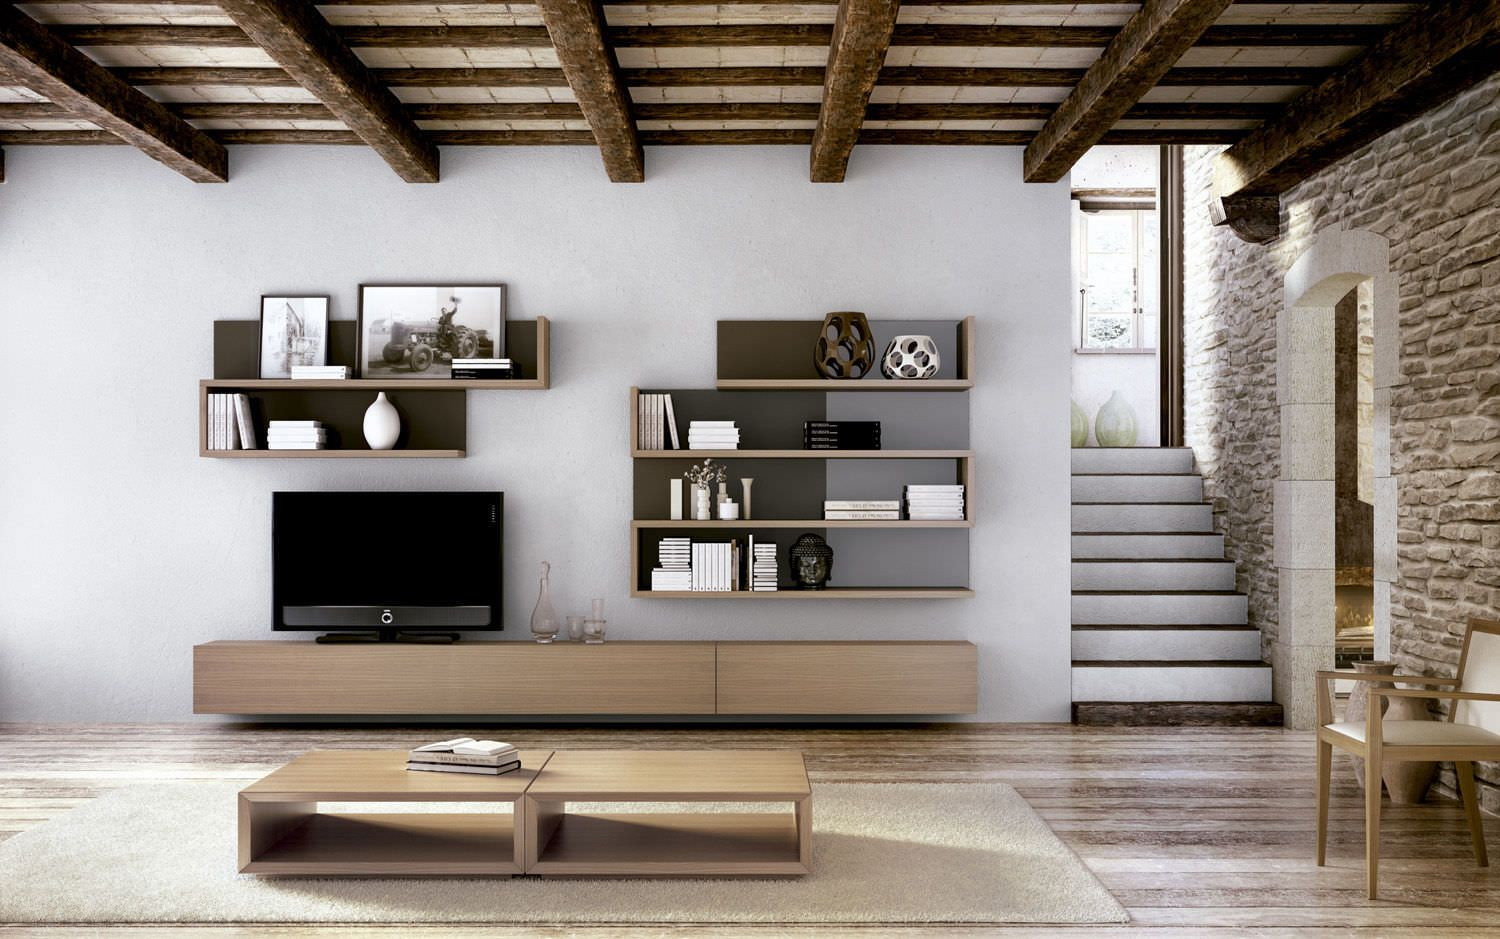 mueble tv moderno en madera la sala carre furniture delmonte pinterest muebles tv modernos mueble tv y tv